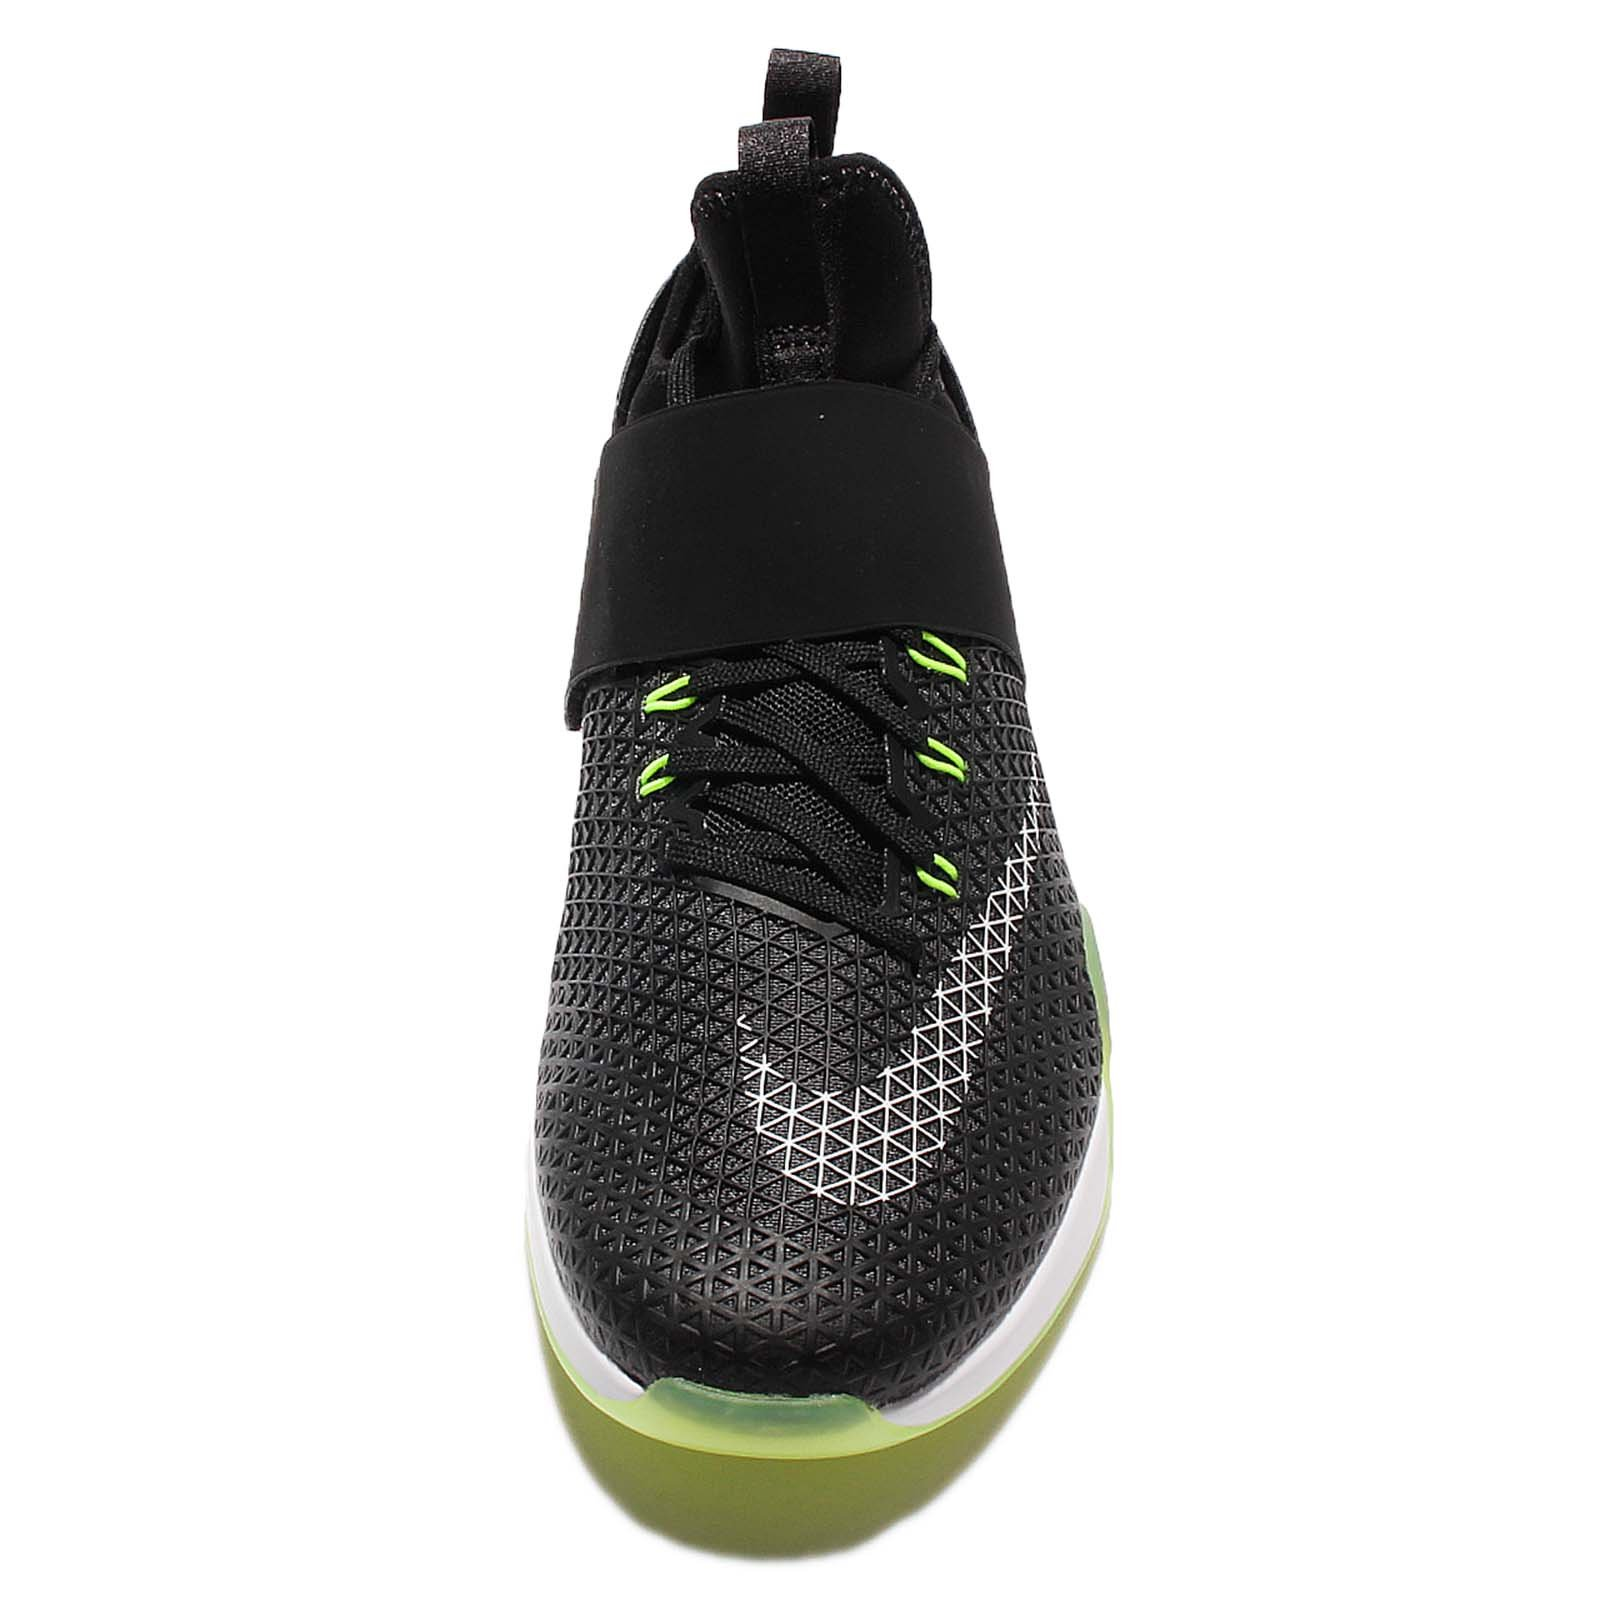 Nike - Signore Shoes Zoom Aria Forte 843.975 39 Nero